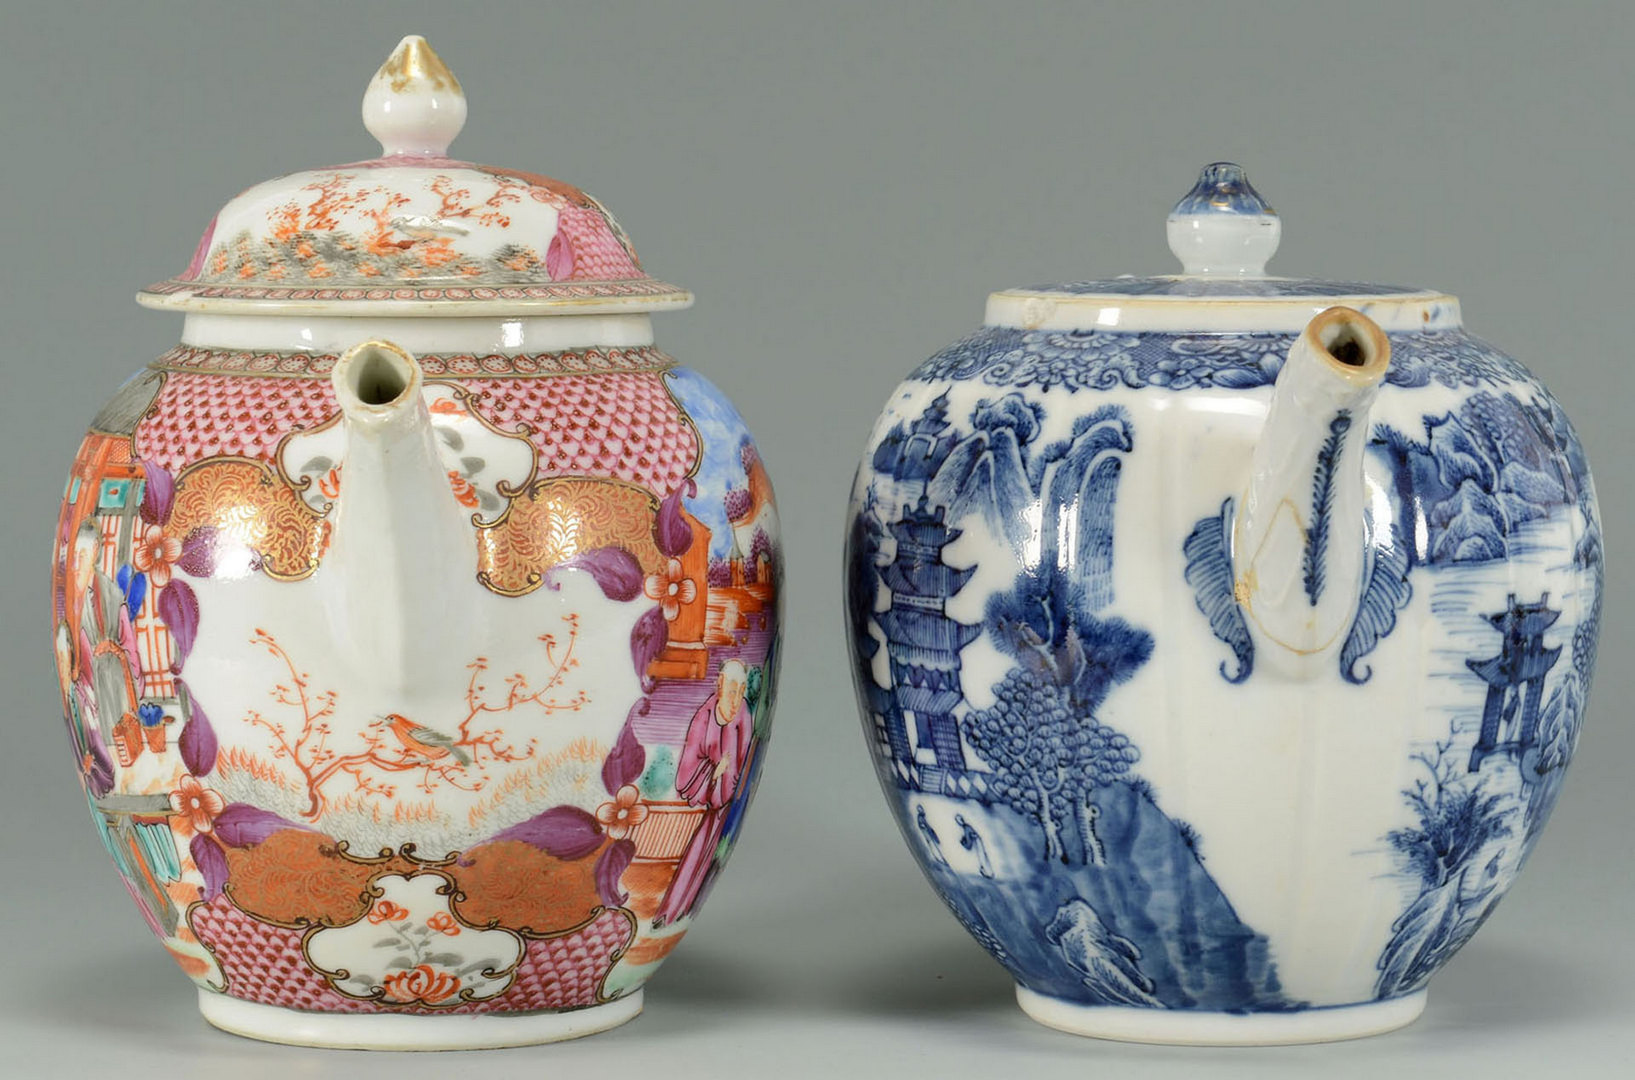 Lot 19: 2 Chinese Export teapots – Famille Rose and Blue a